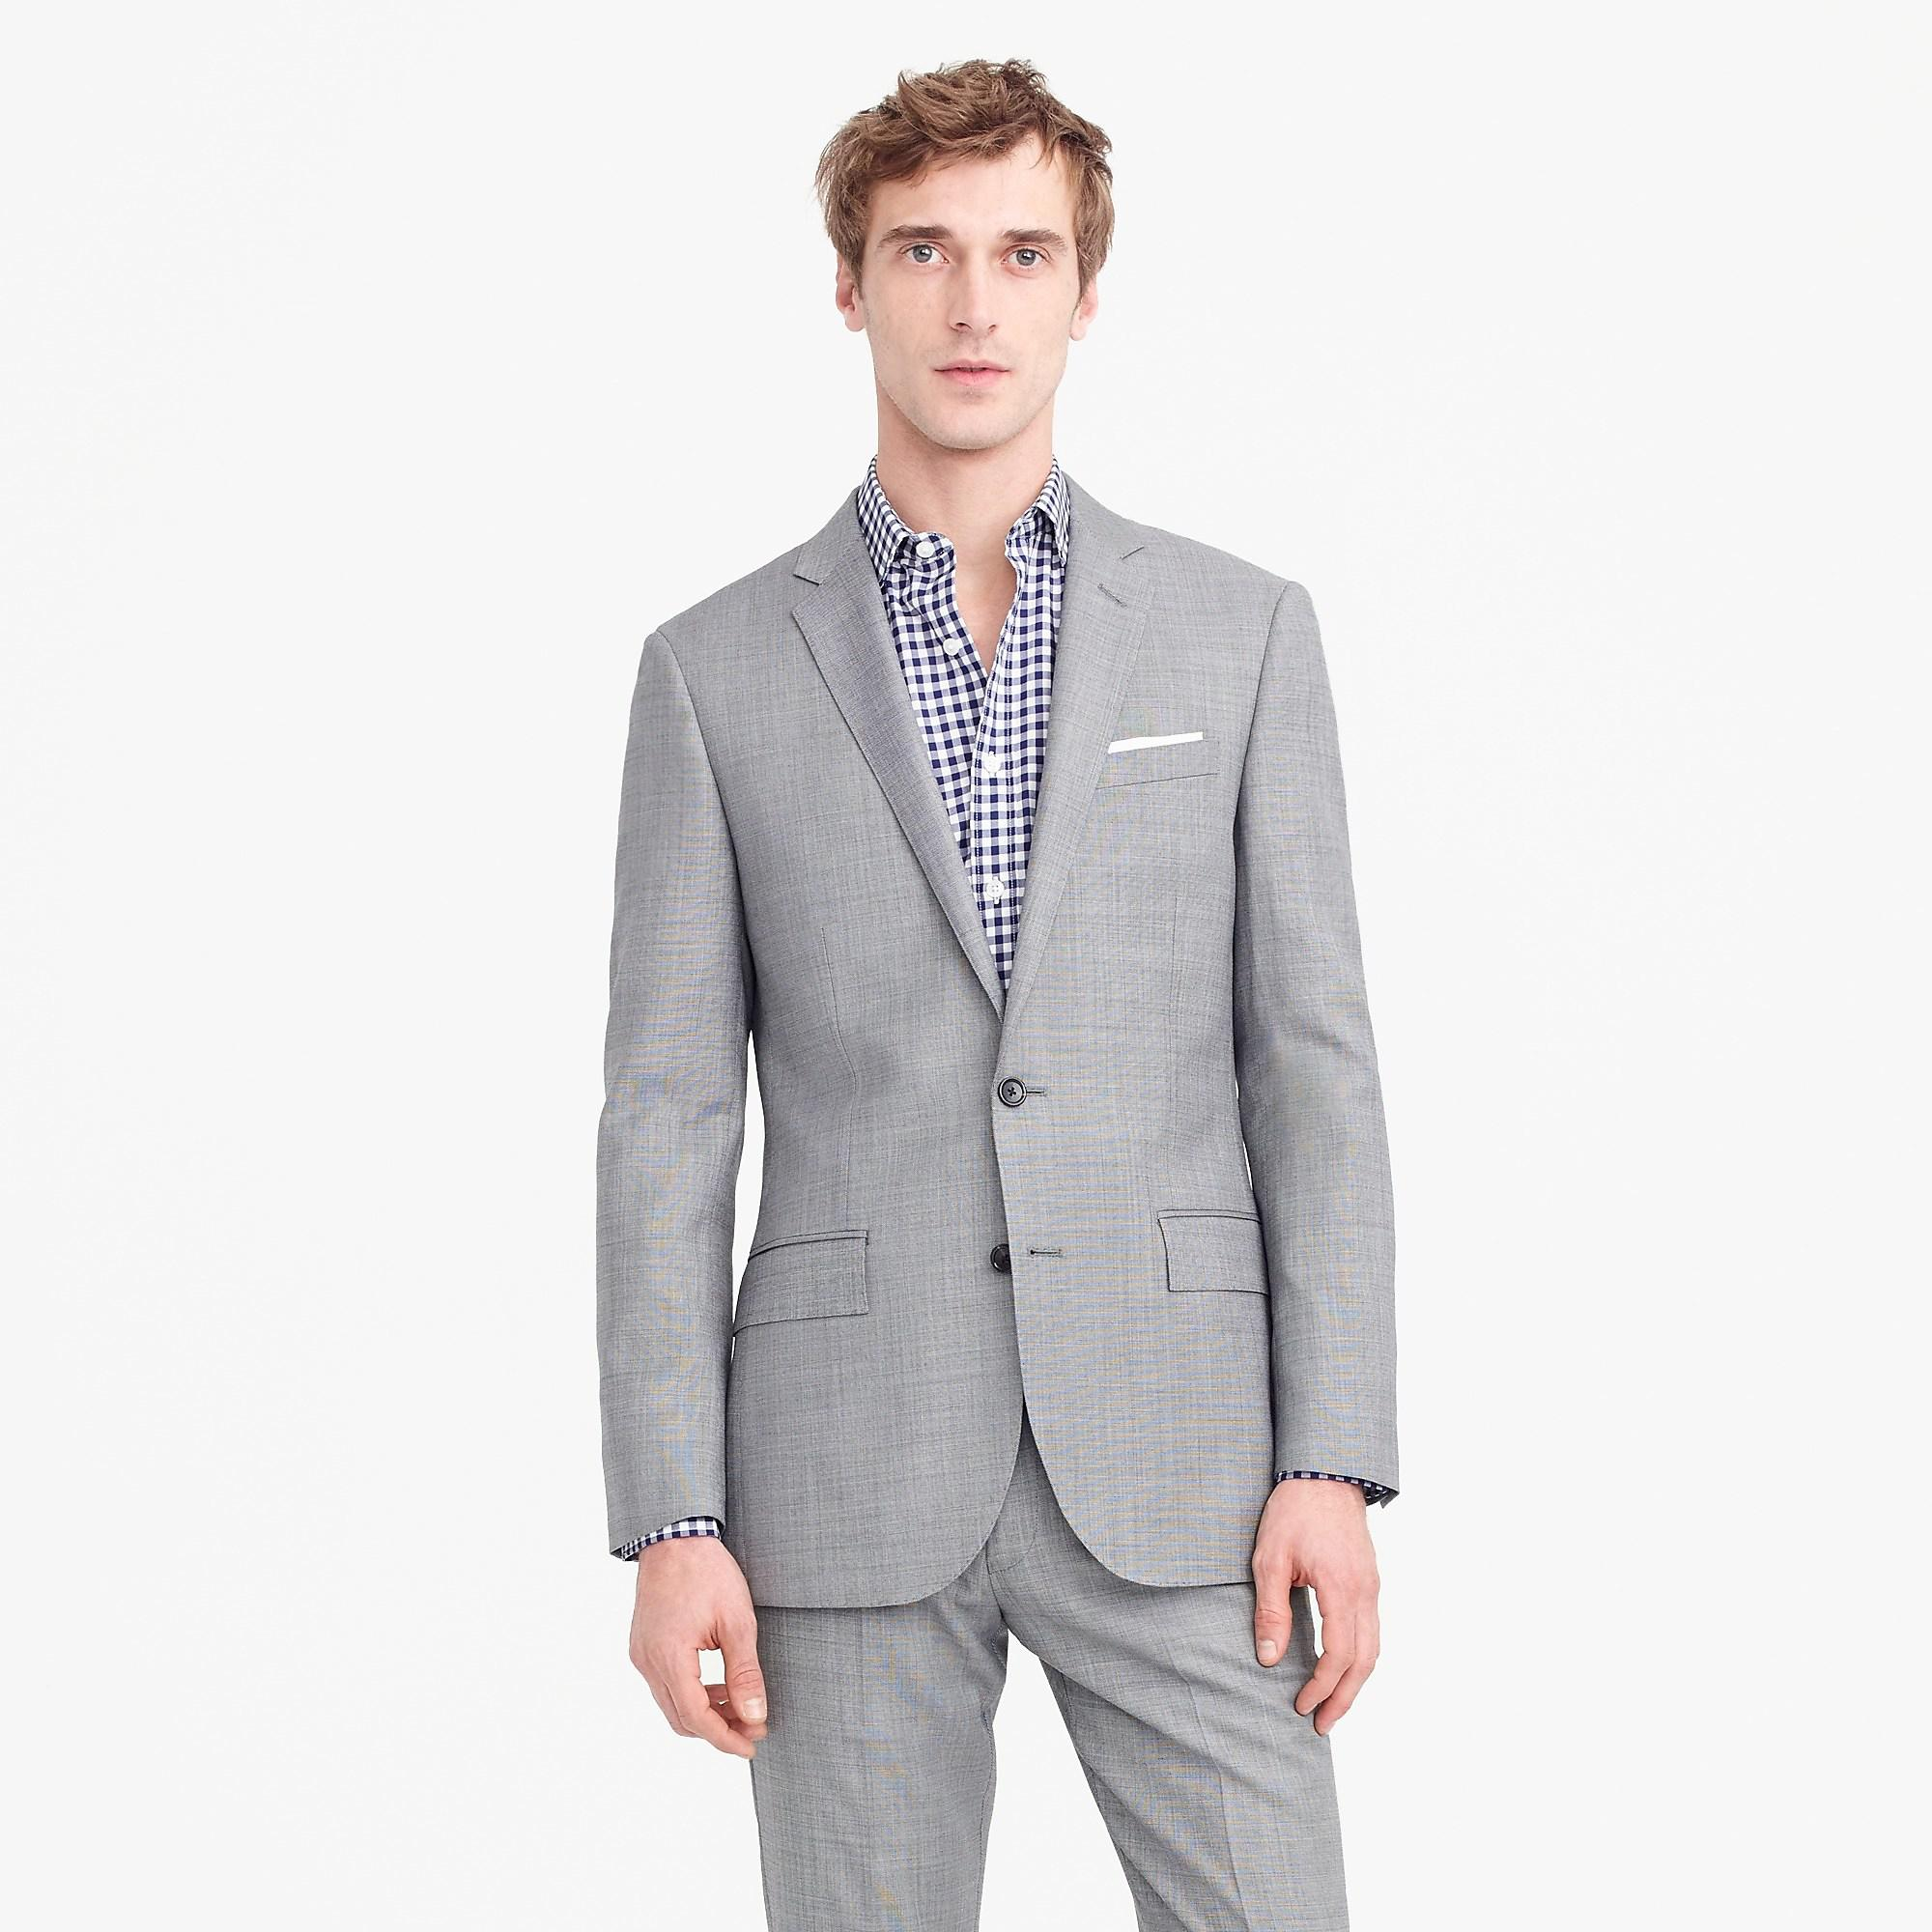 18a979115c8c Lyst - J.Crew Ludlow Slim-fit Suit Jacket In Italian Stretch Worsted ...